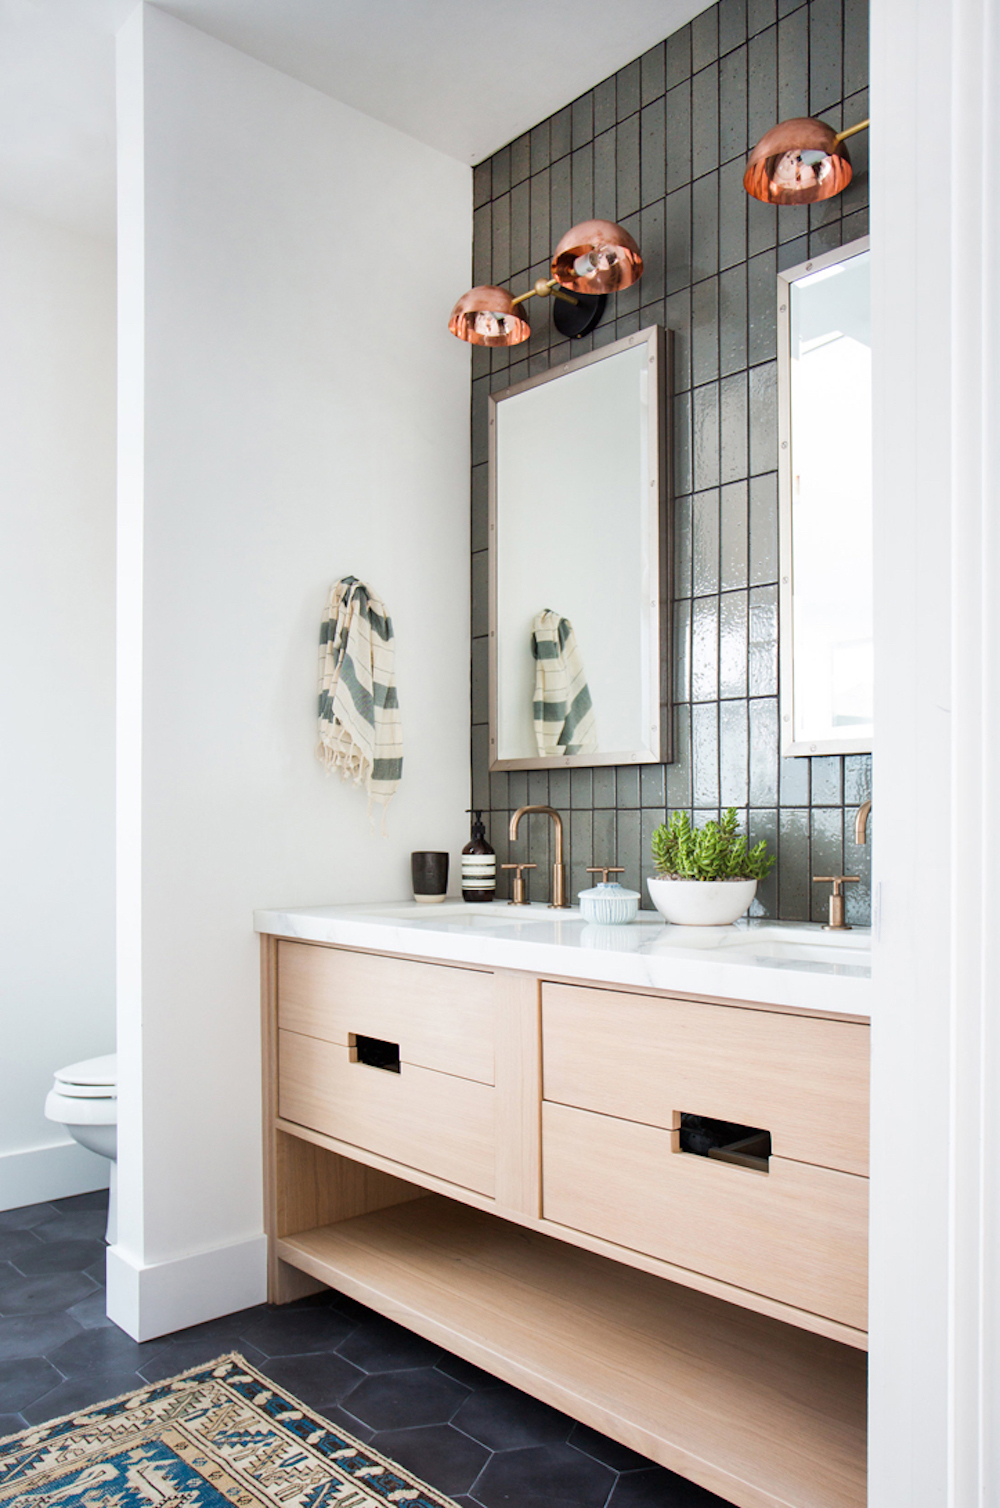 Bathroom renovation tips by First Sense || Bathroom design by Amber Interiors